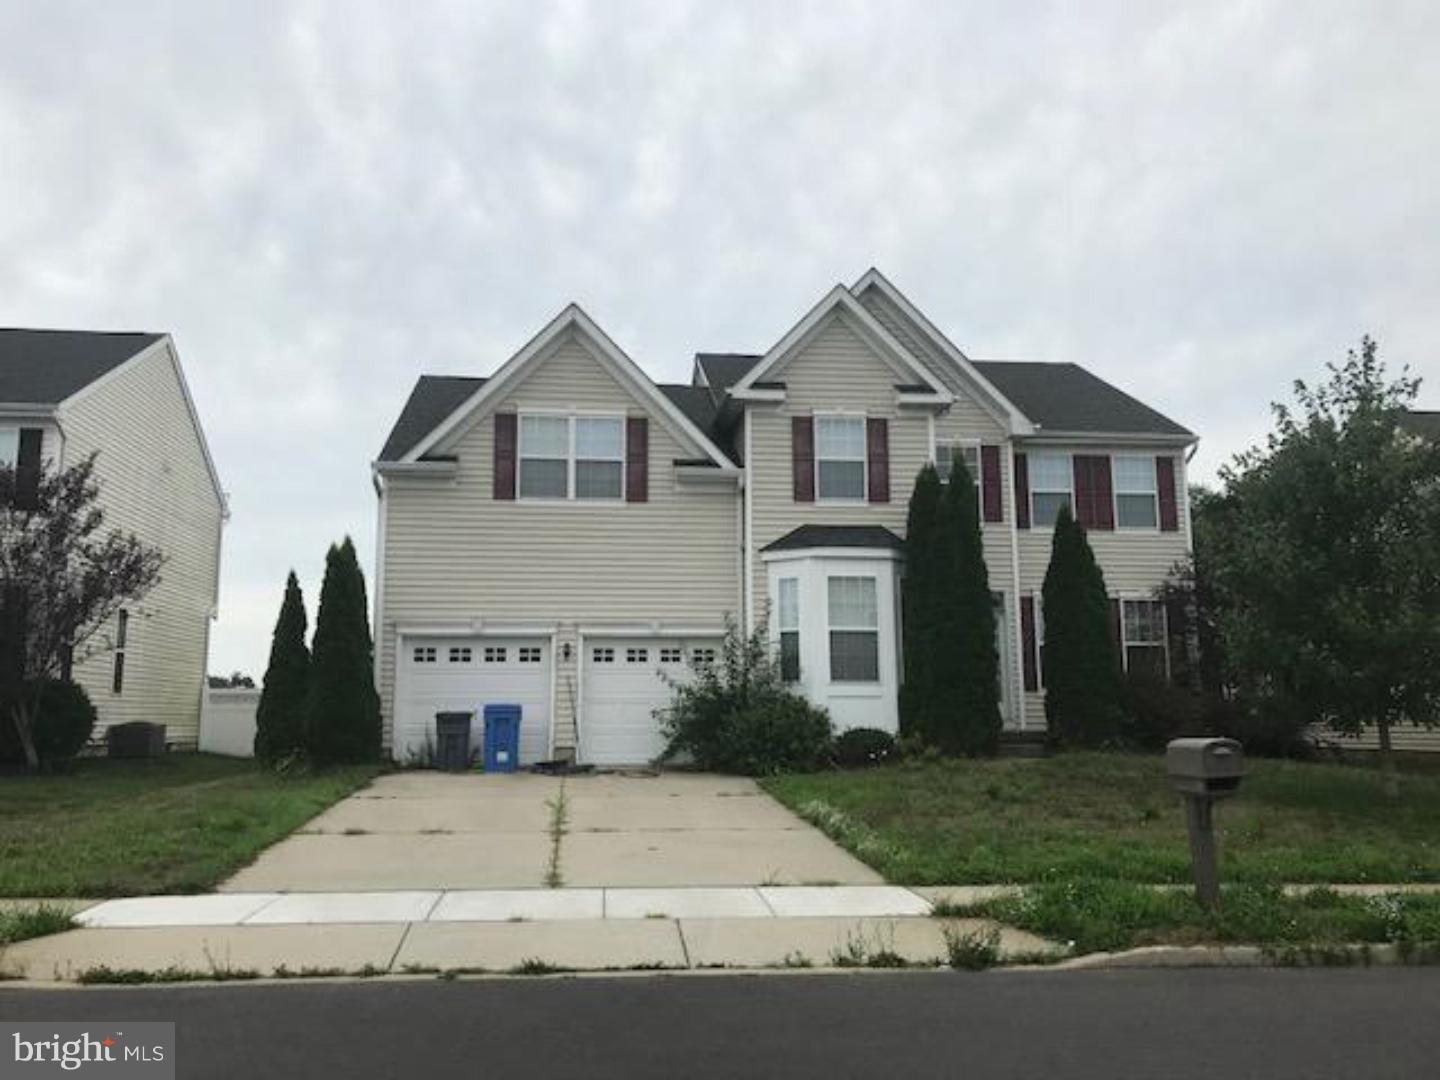 Single Family Home for Sale at 27 GARWOOD BLVD Clayton, New Jersey 08312 United States